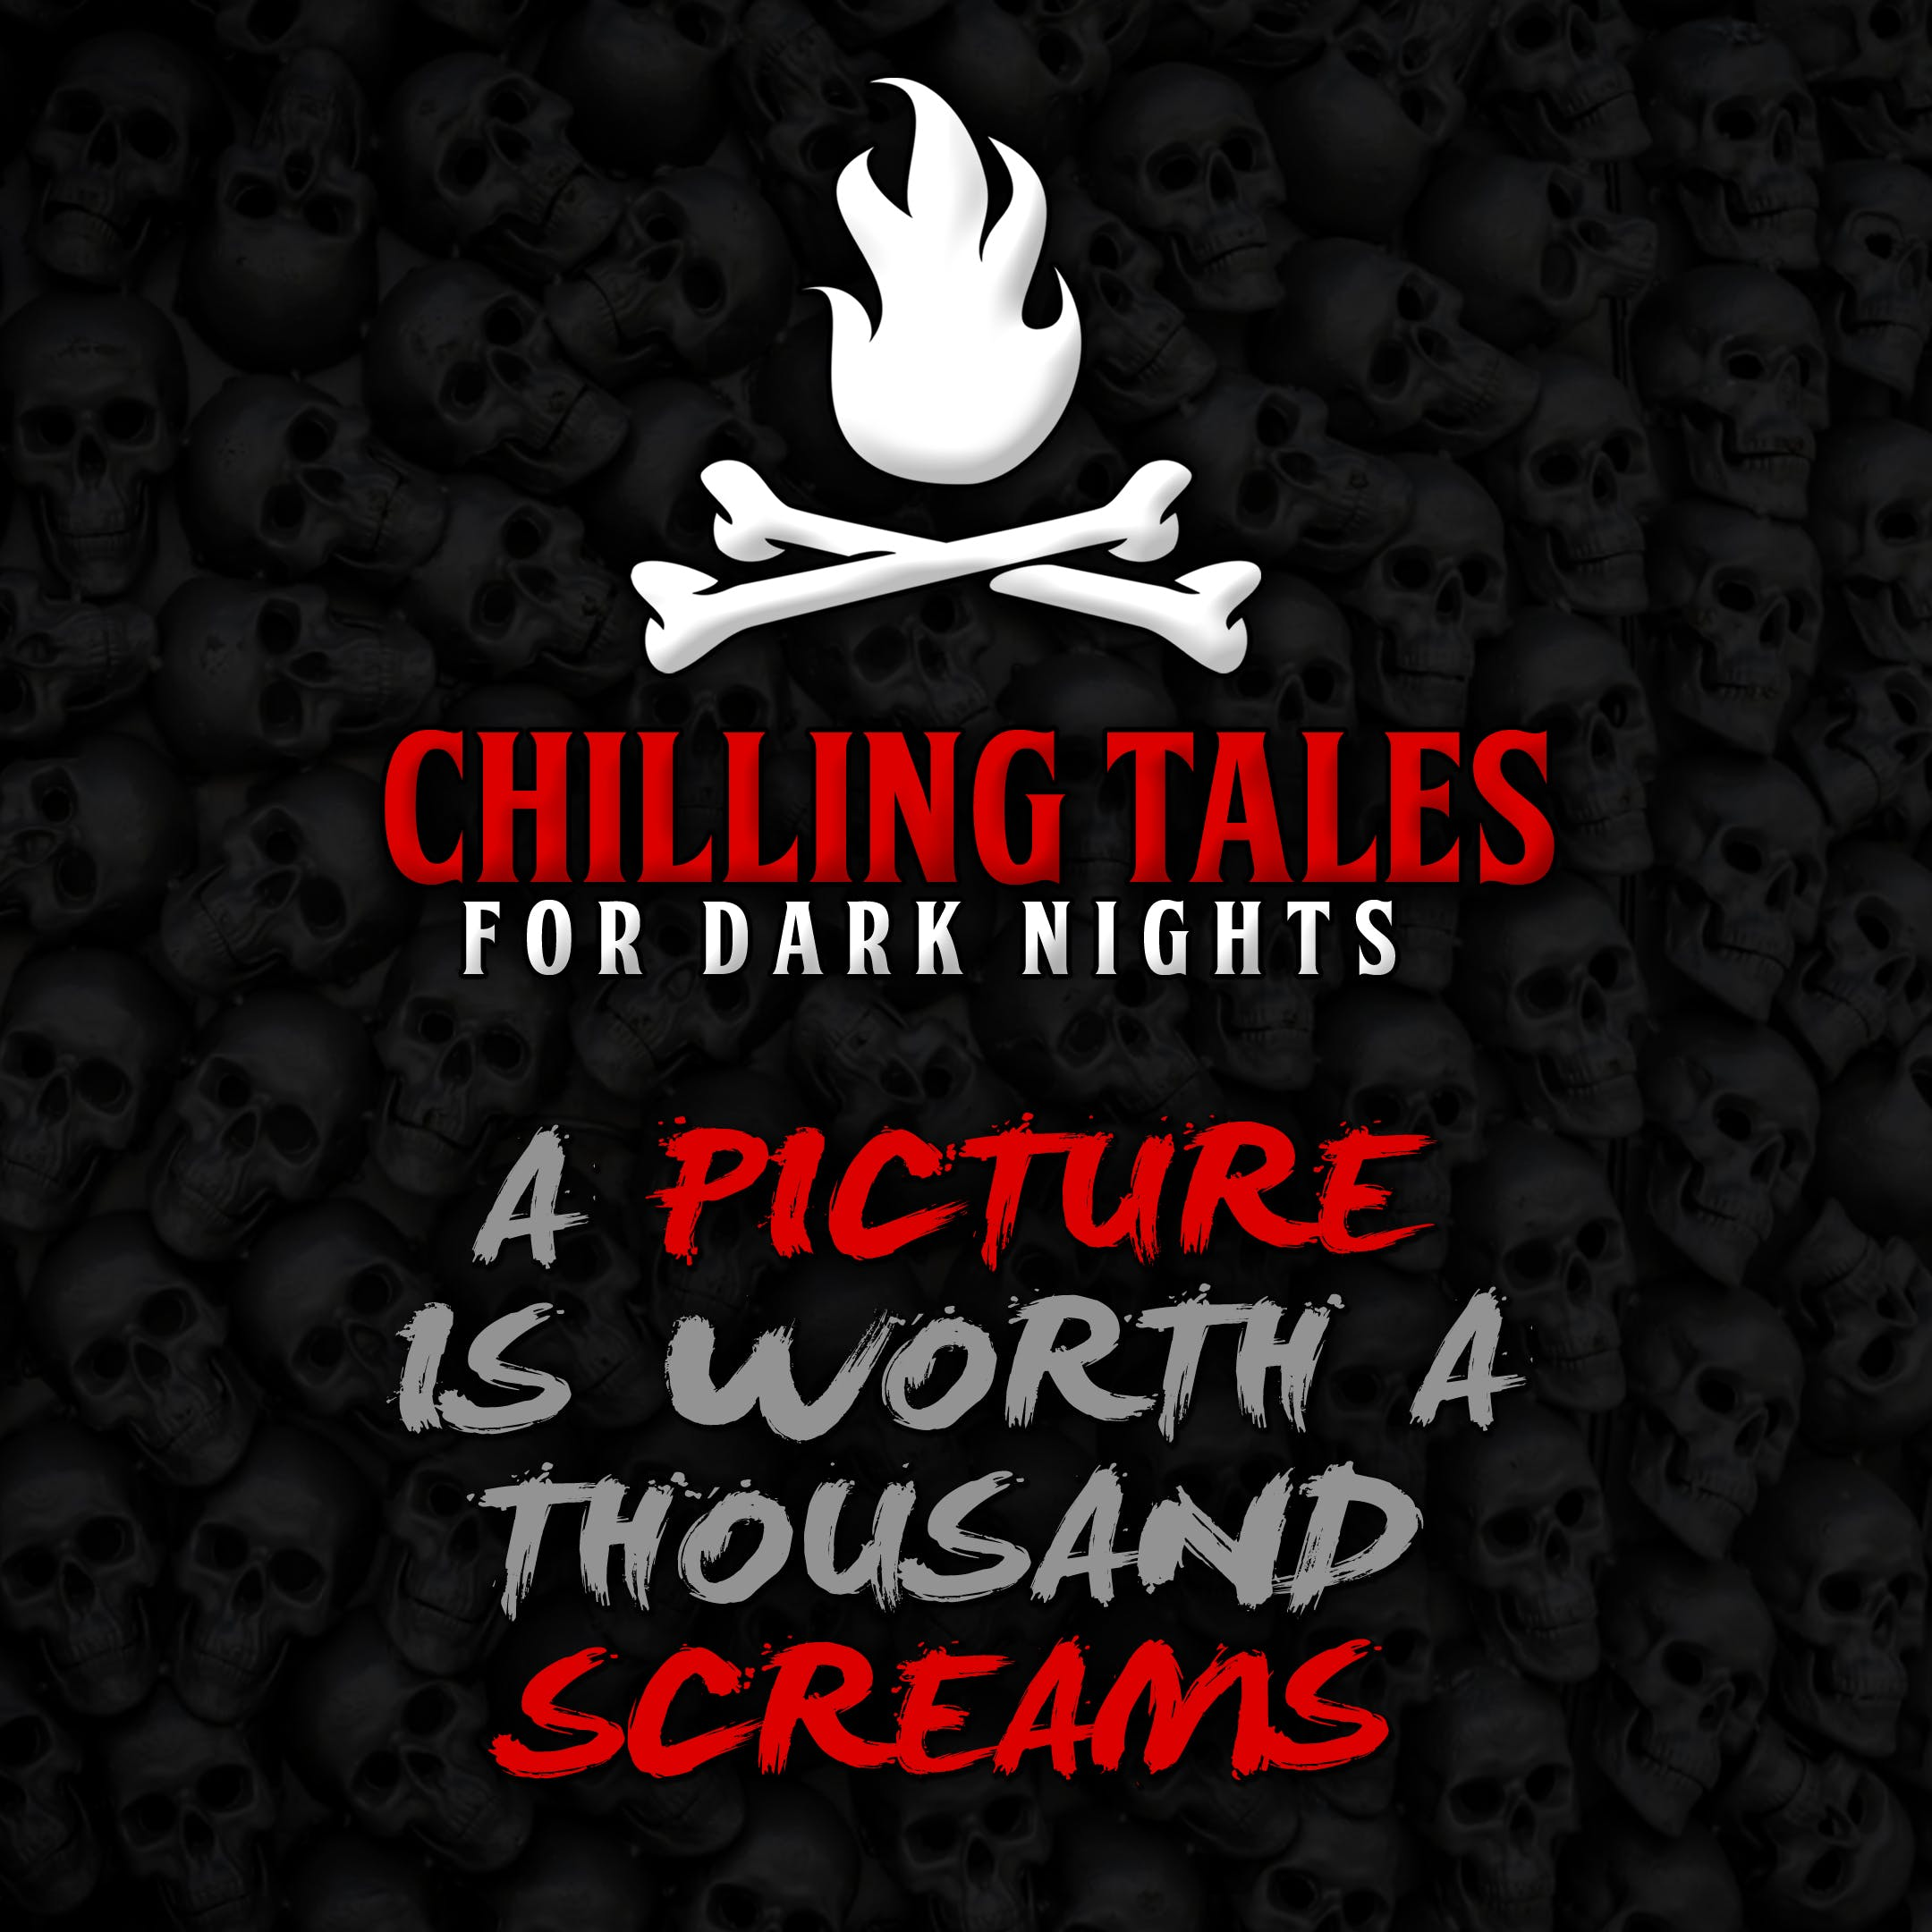 91: A Picture is Worth a Thousand Screams – Chilling Tales for Dark Nights